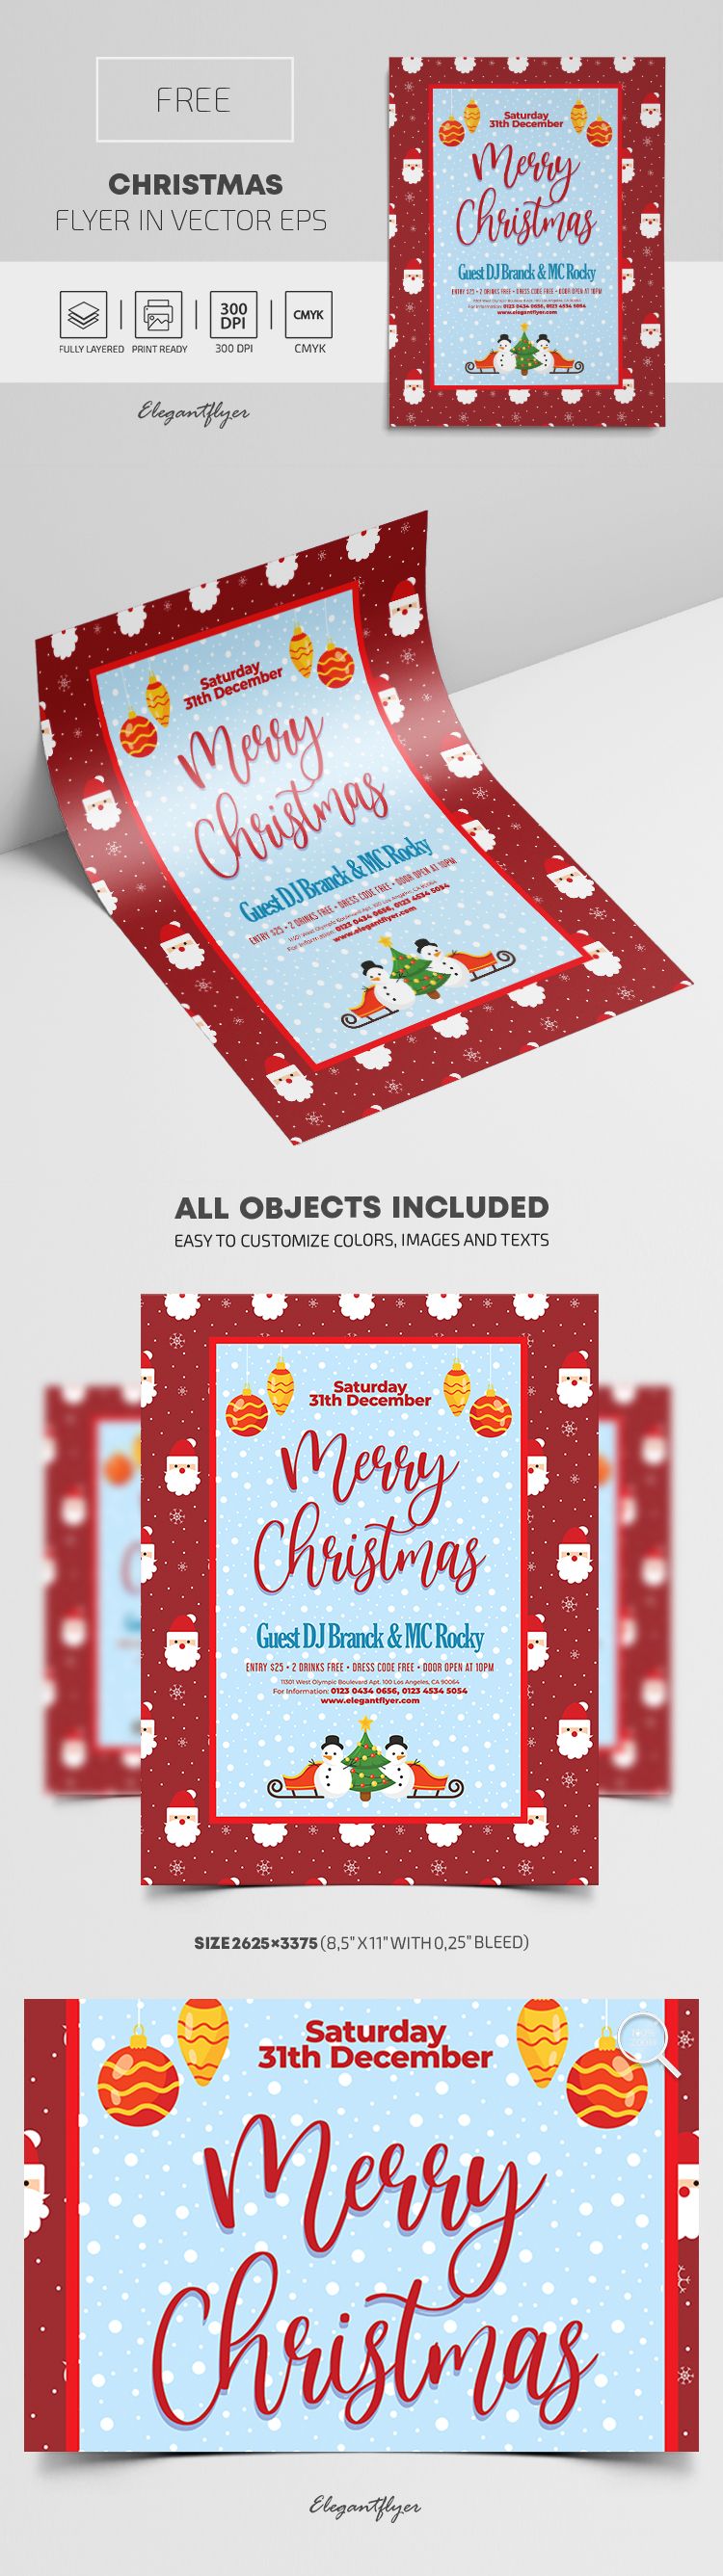 Christmas – Free Flyer EPS Template